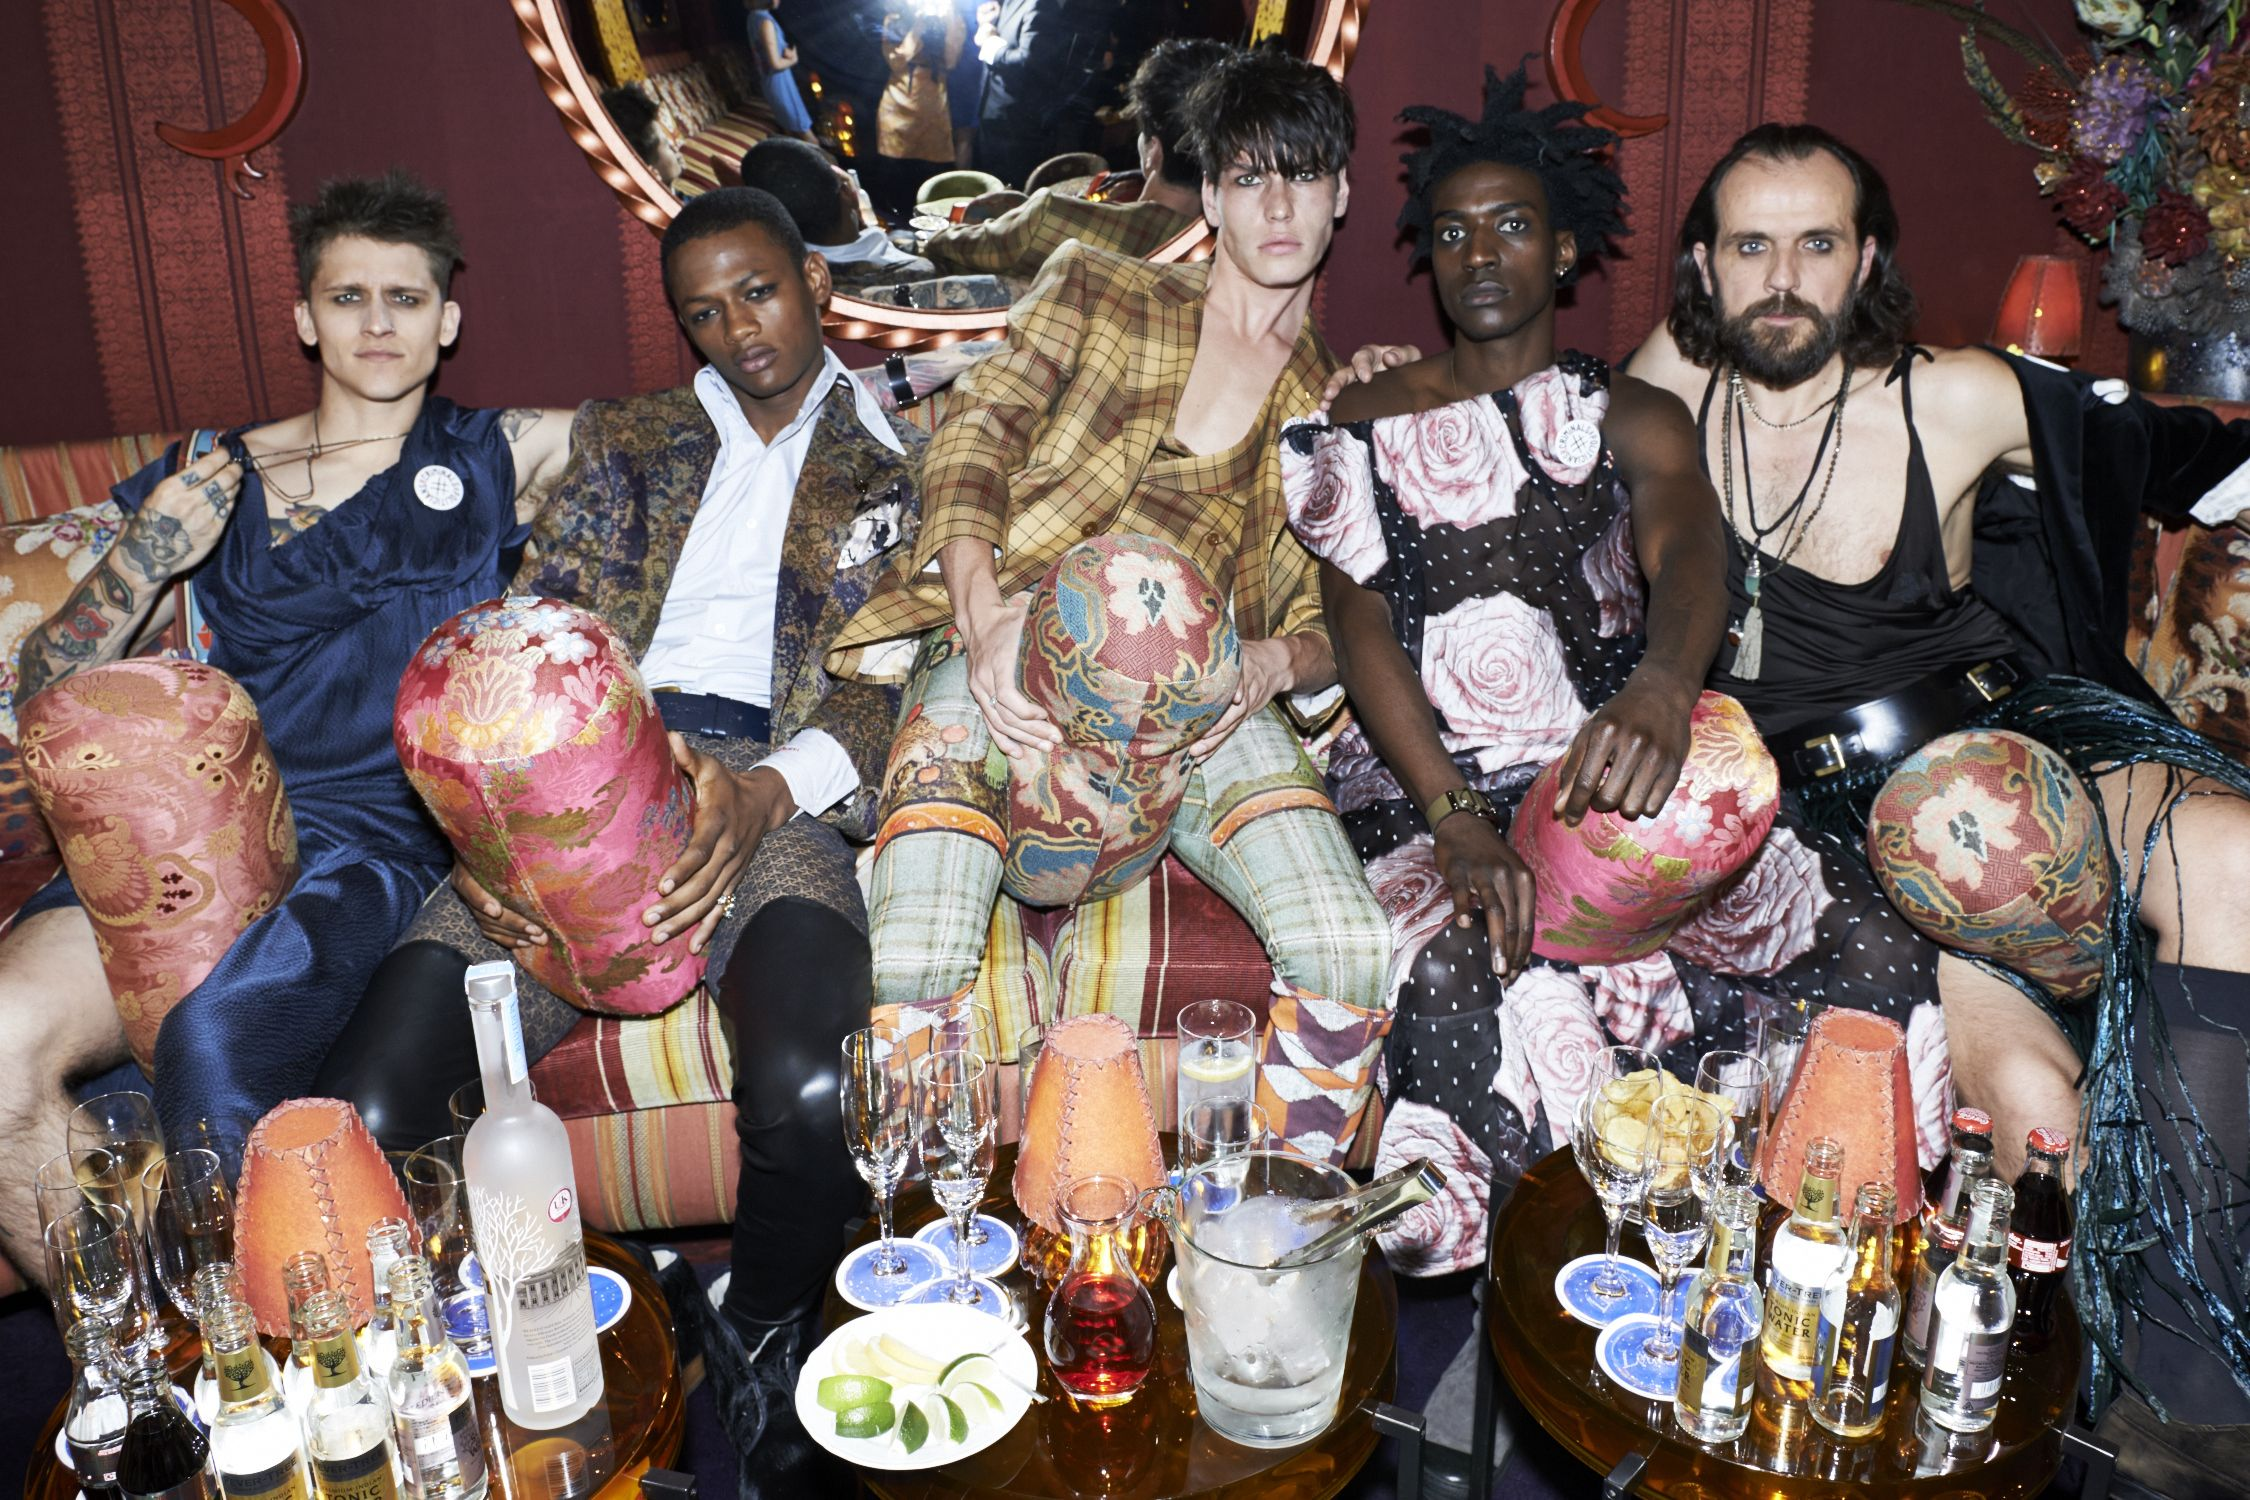 Andreas & the UNISEX rebel gang at the Vivienne Westwood & Another Man Psychedelic Unisex party. #VivienneWestwoodBespoke #AnotherMan10Years Picture: Amelia Karlsen